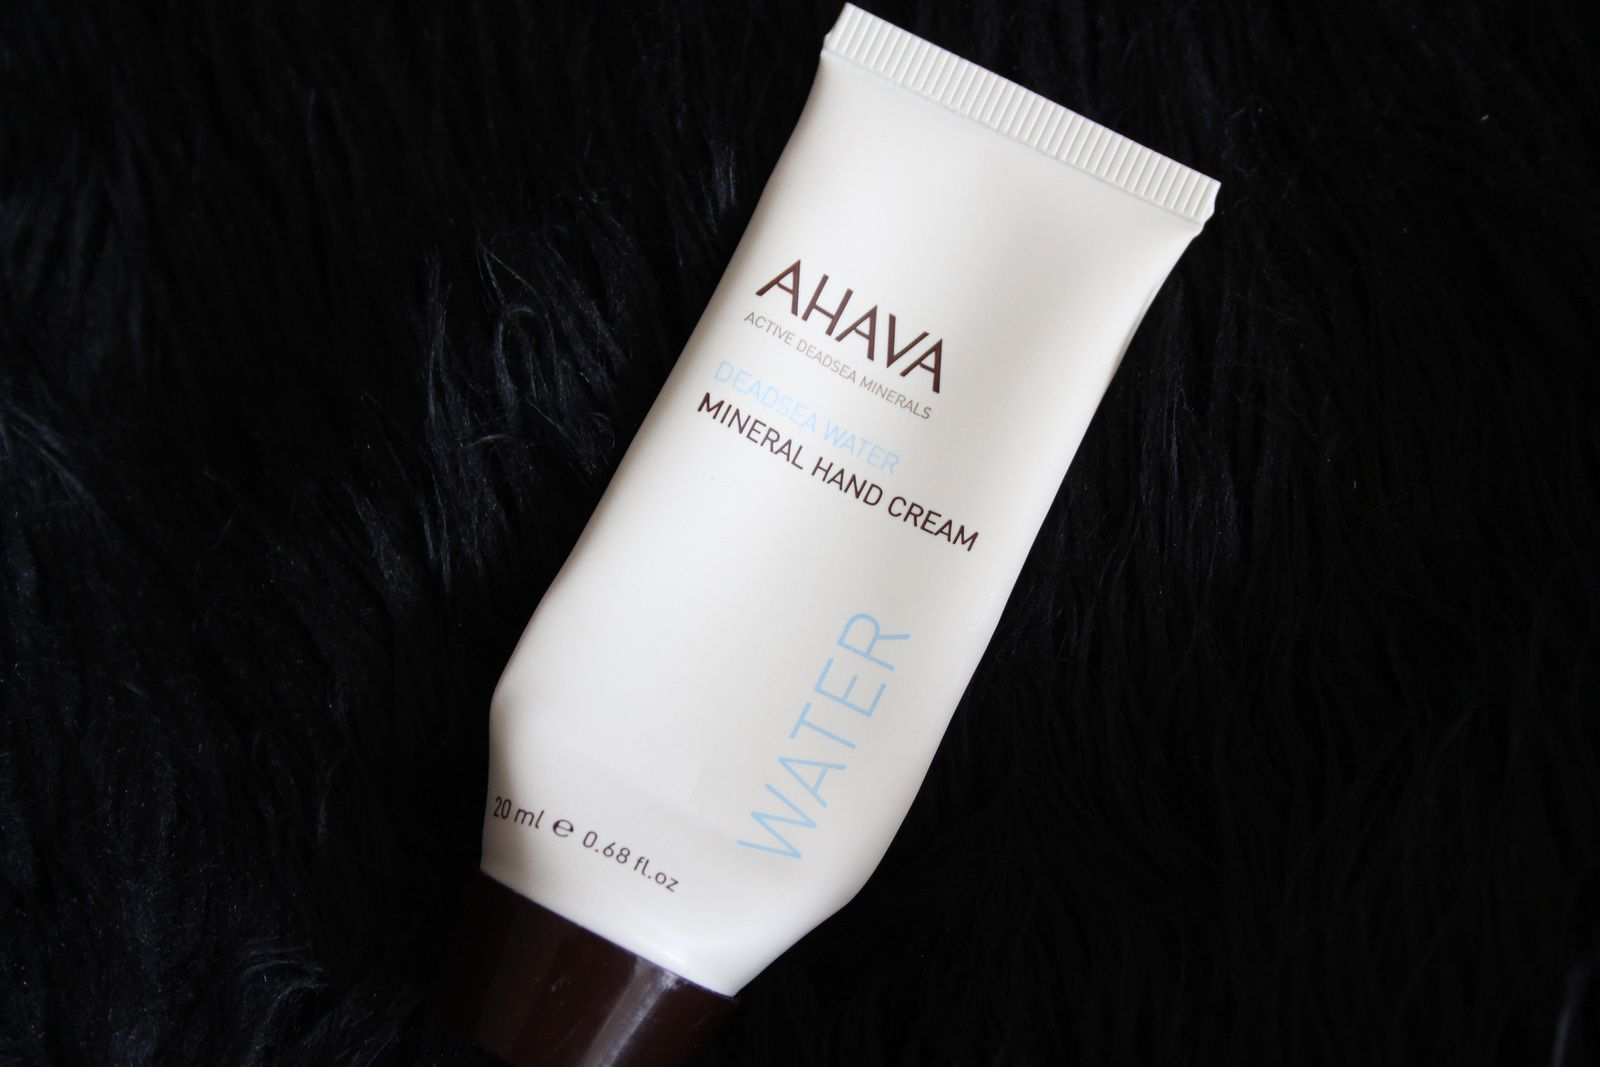 AHAVA The Perfect Hand Cream!